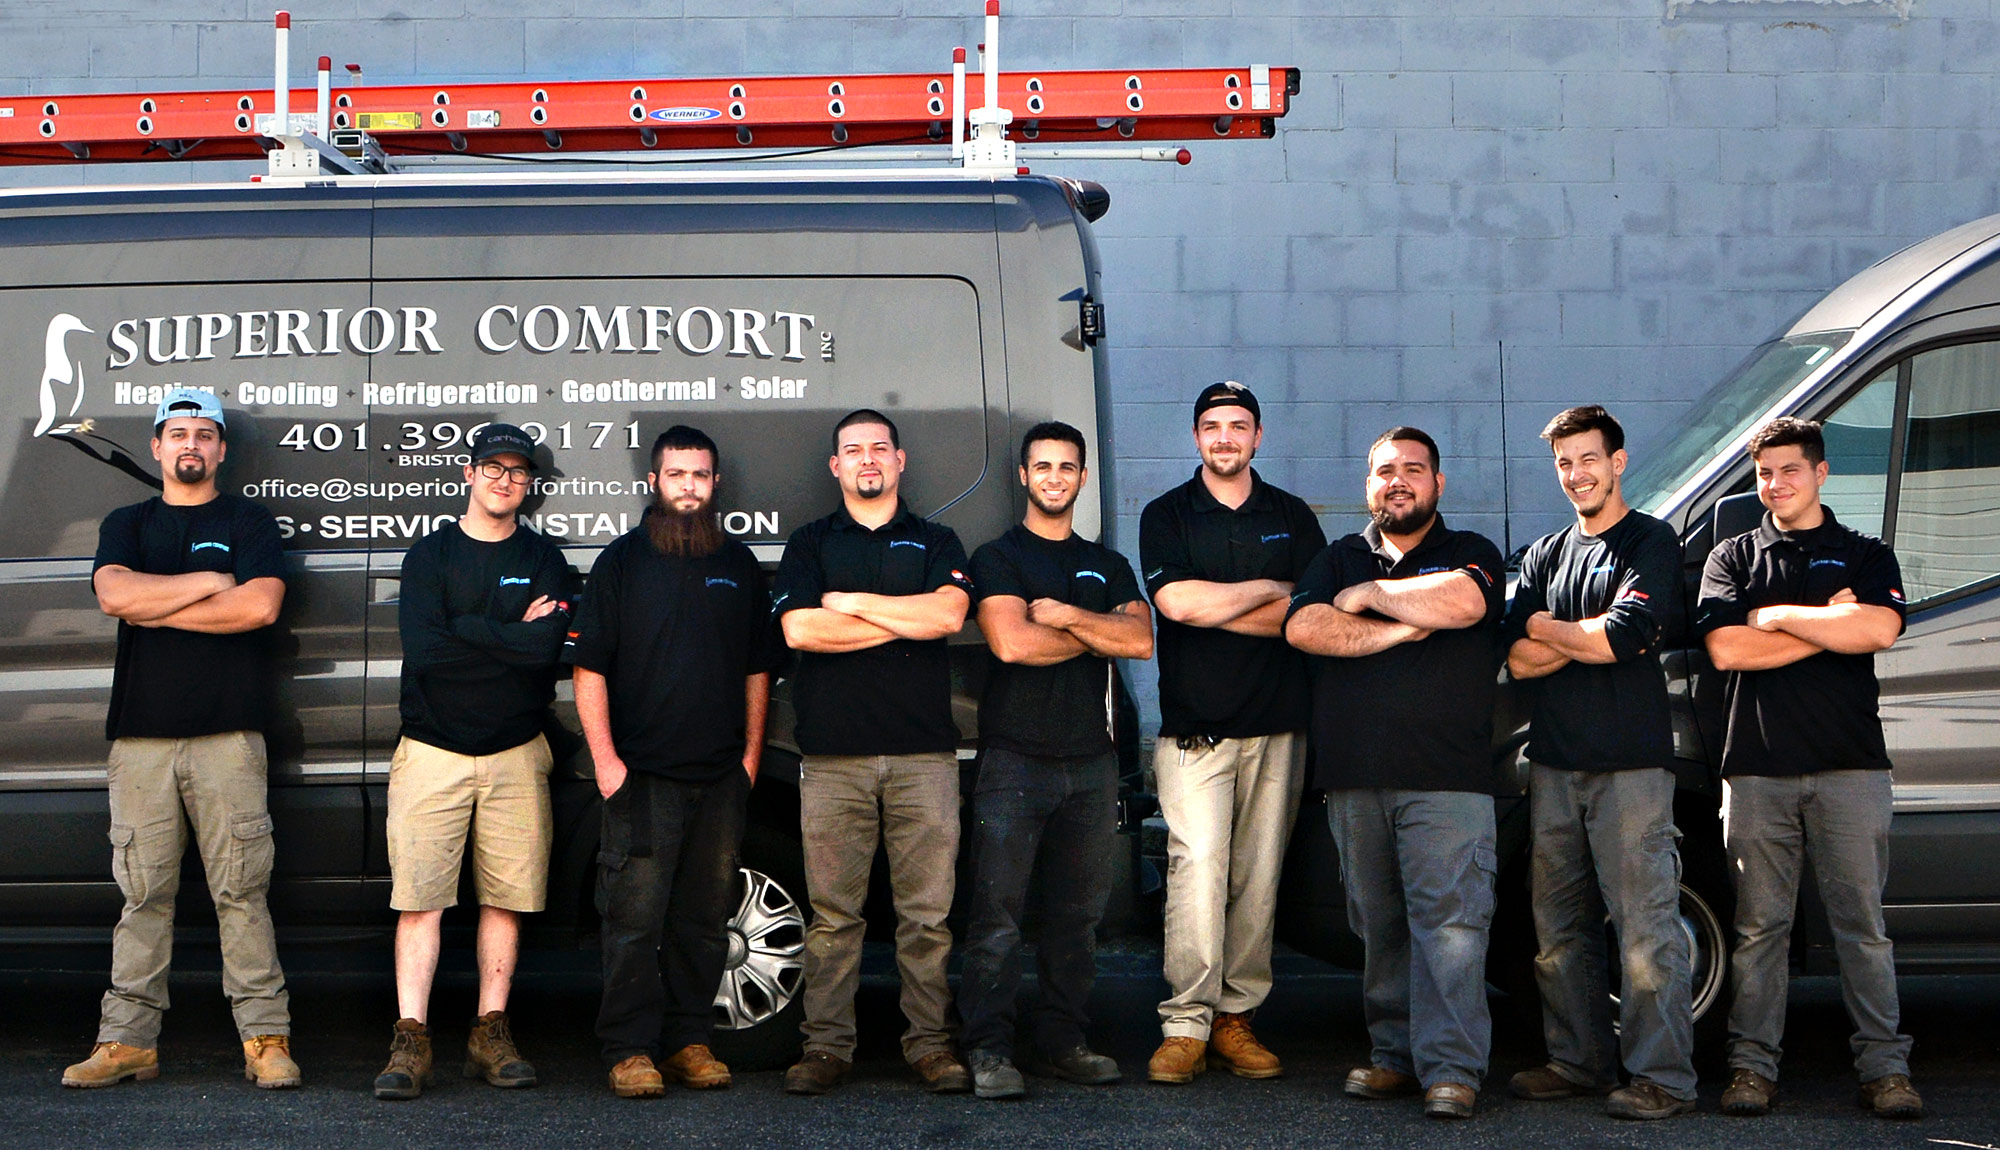 8 MTTI HVAC/R Technician Graduates Are Apprentices At Superior Comfort in Bristol, RI.